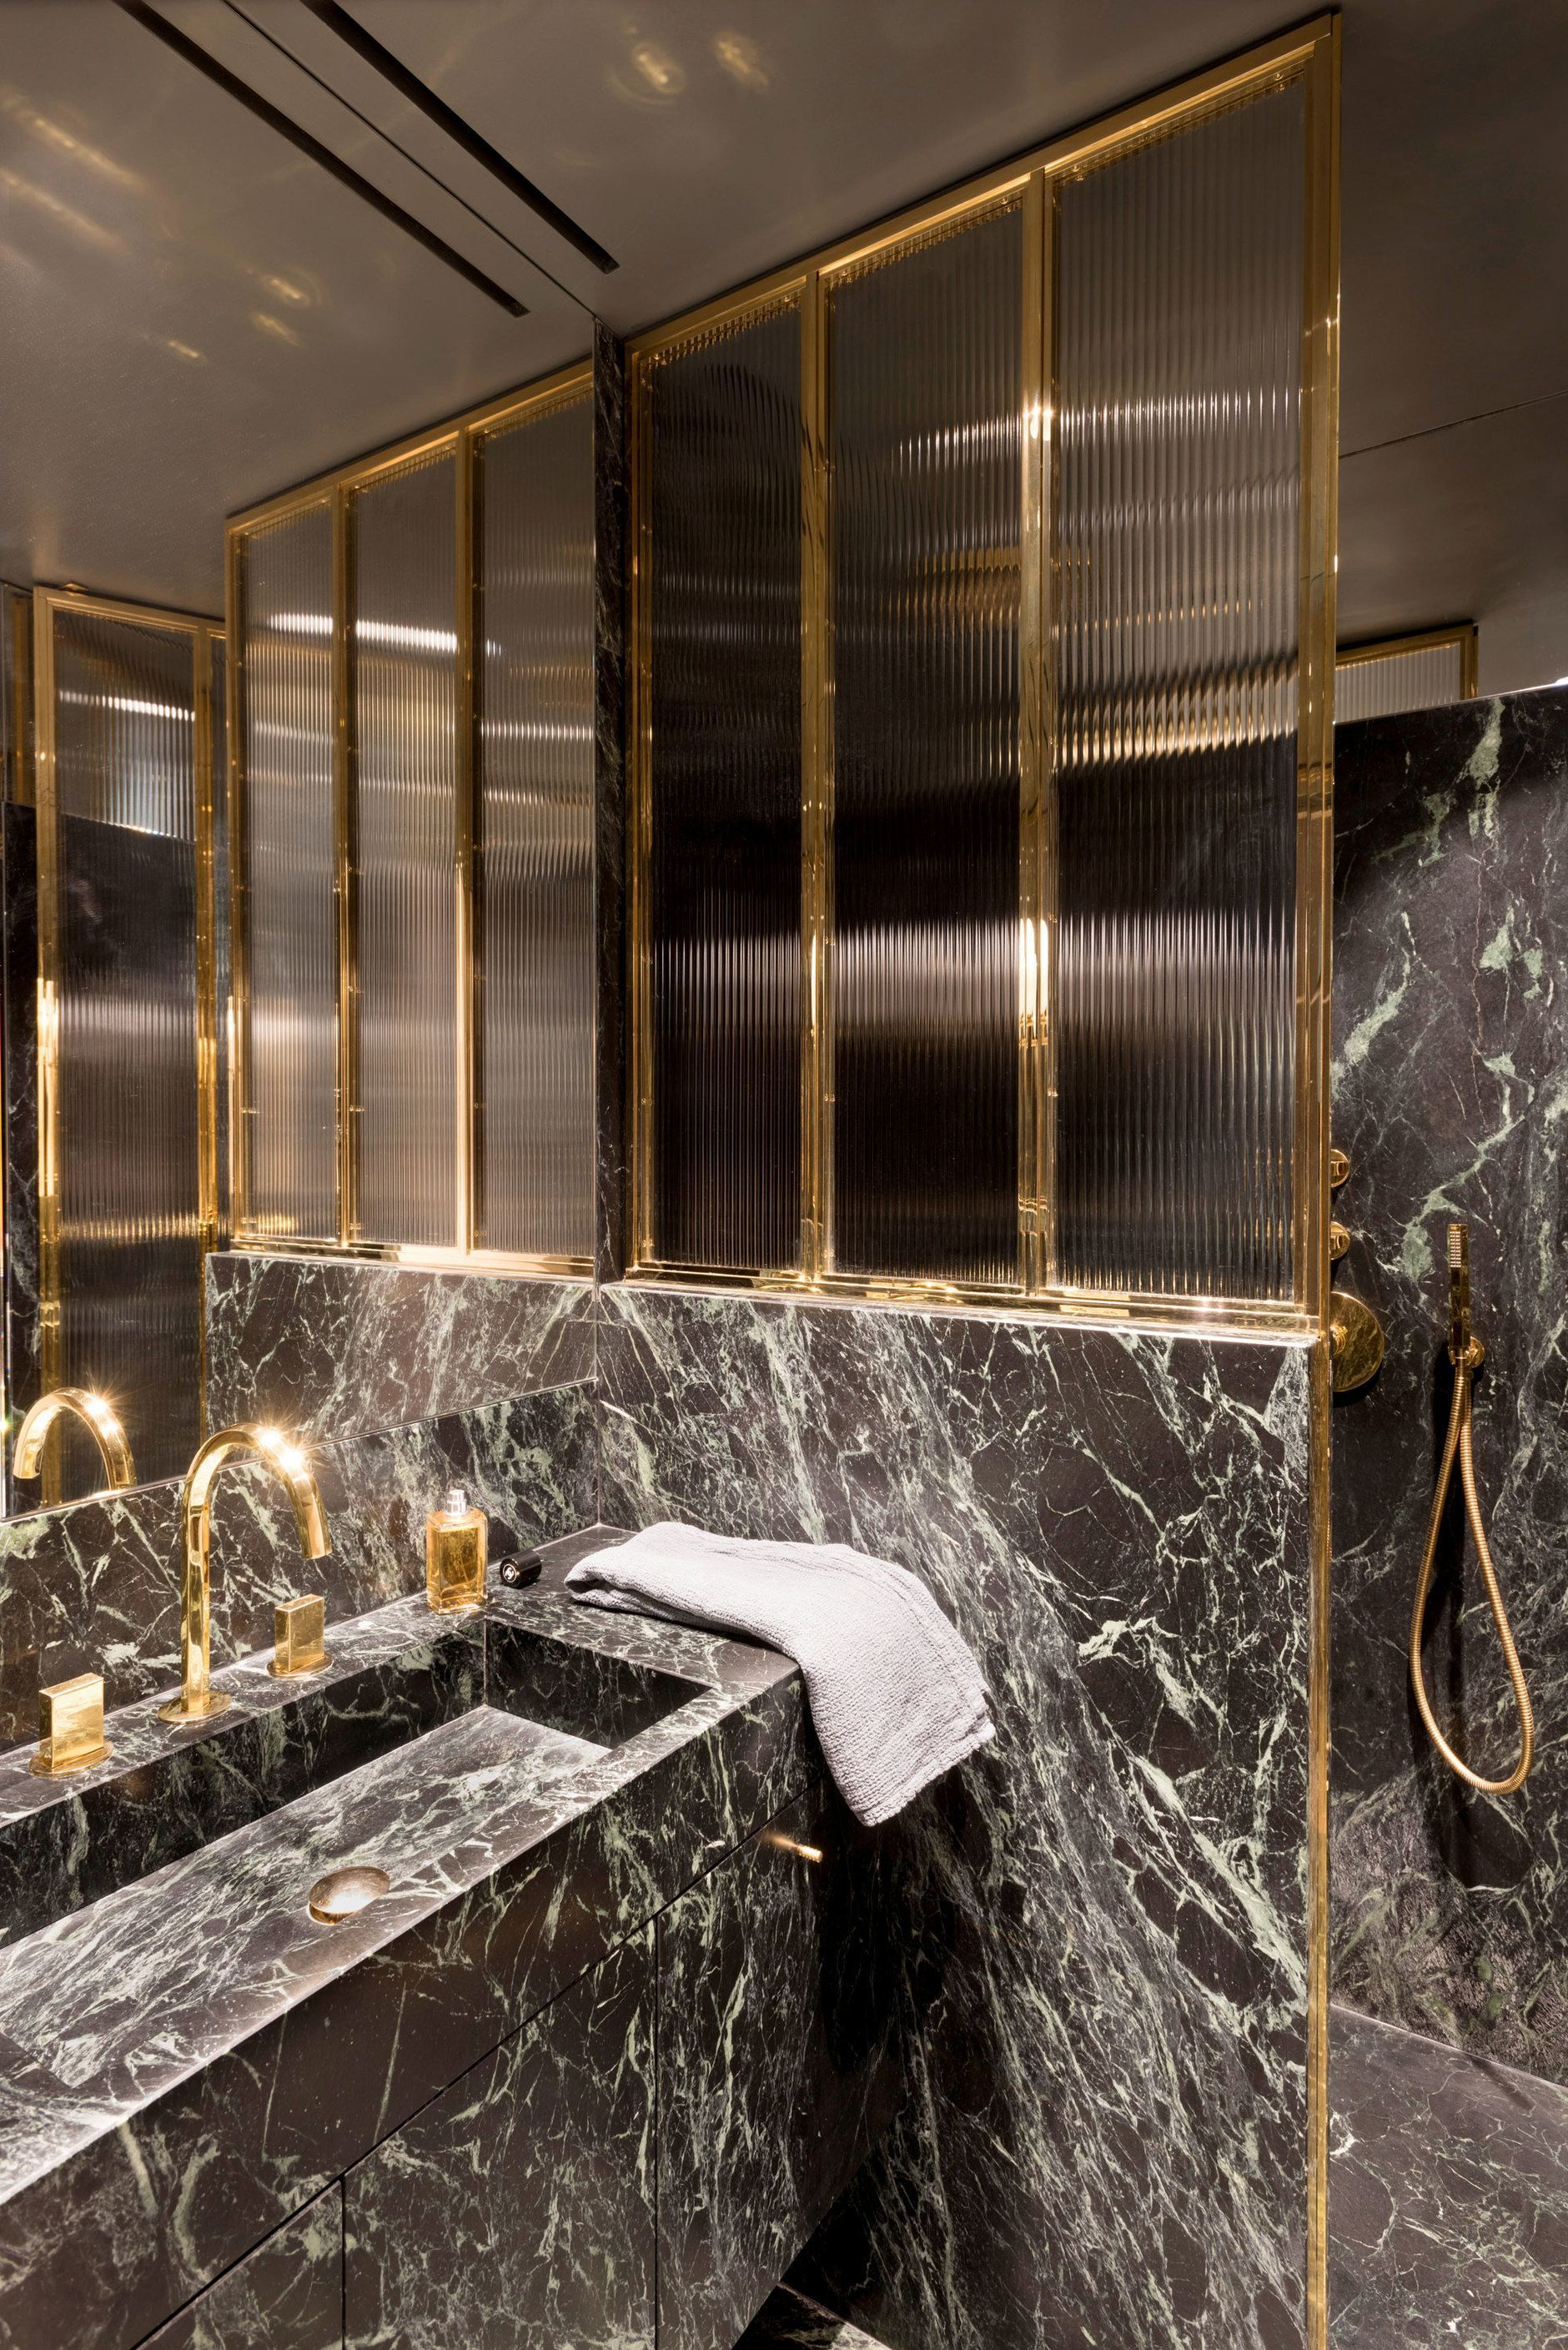 Come to see the most luxury bathroom Inspirations for your next ...